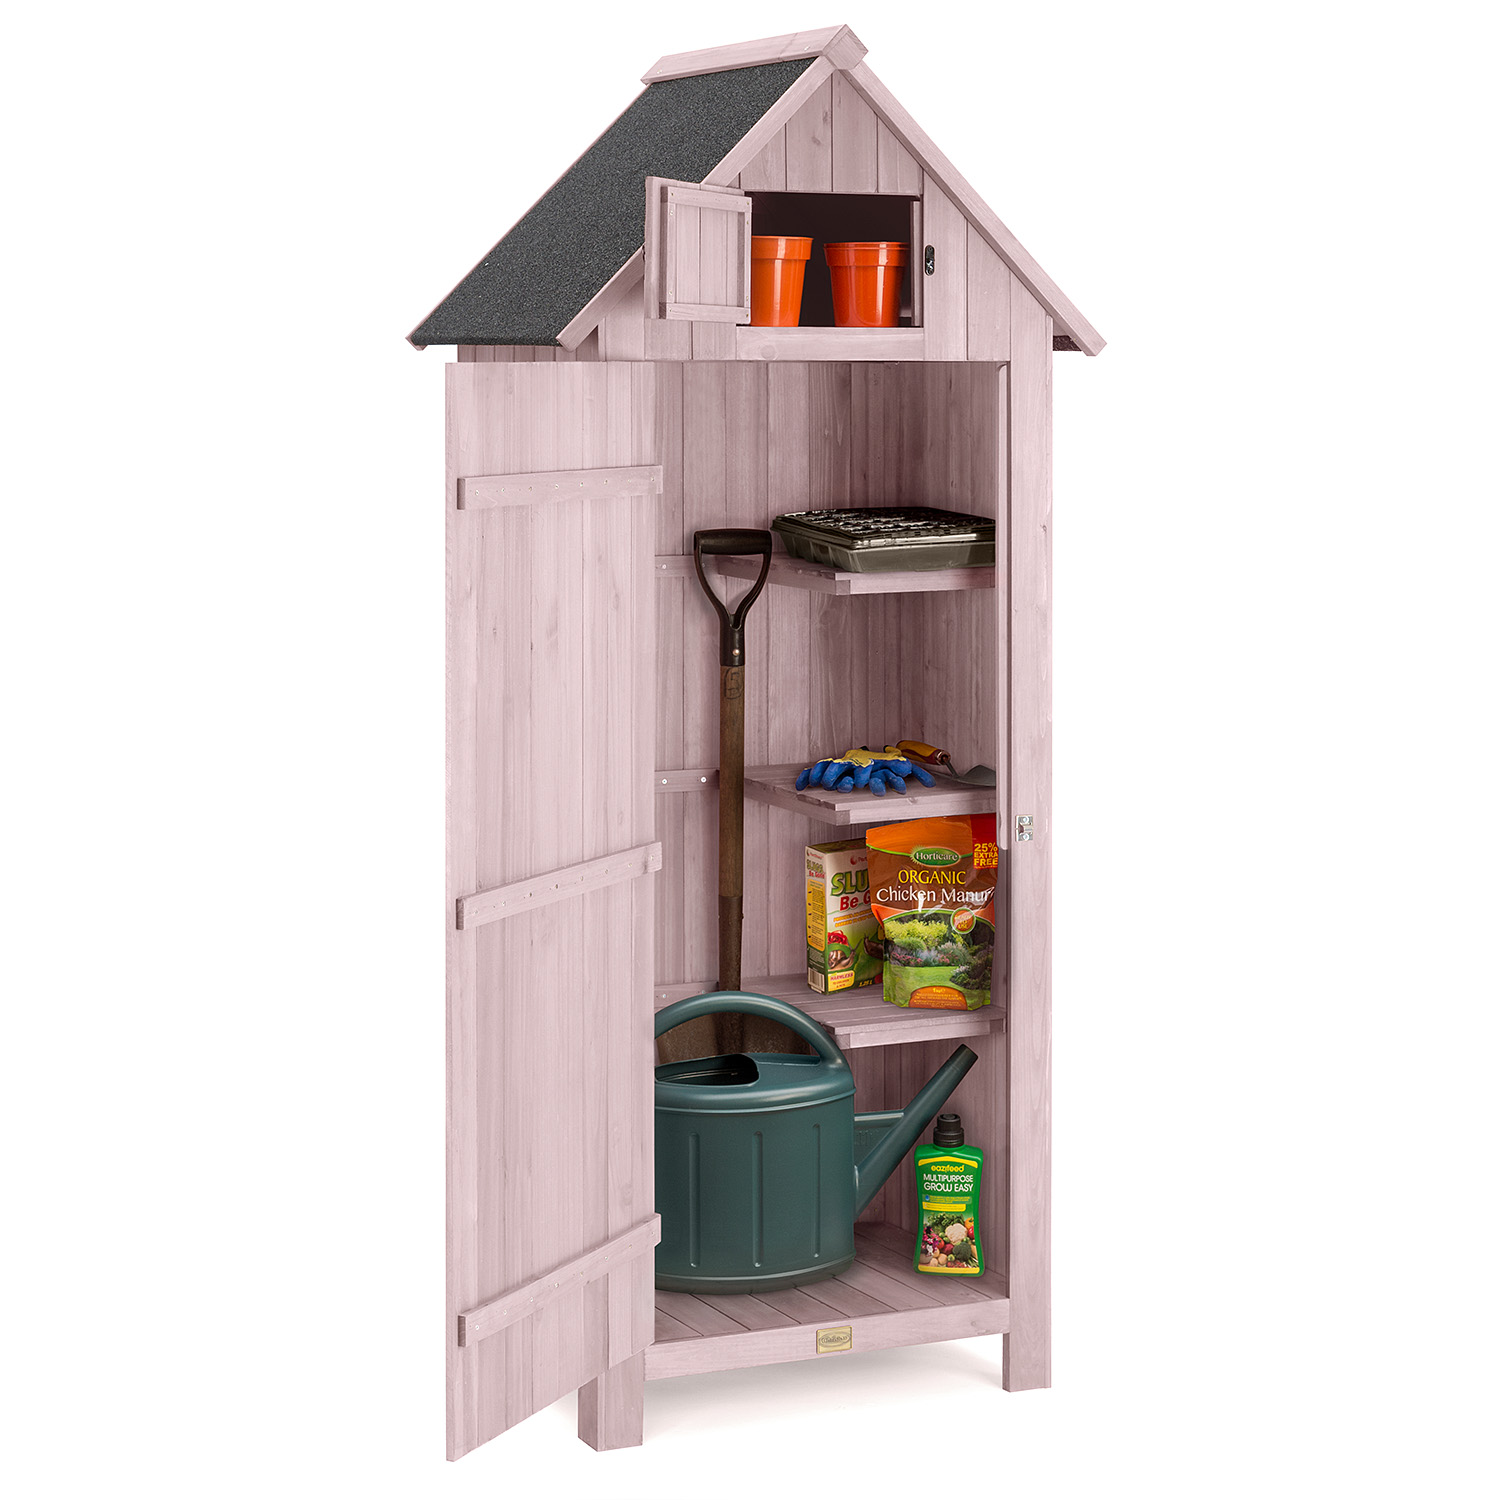 Image of Narrow Garden Shed - Pink